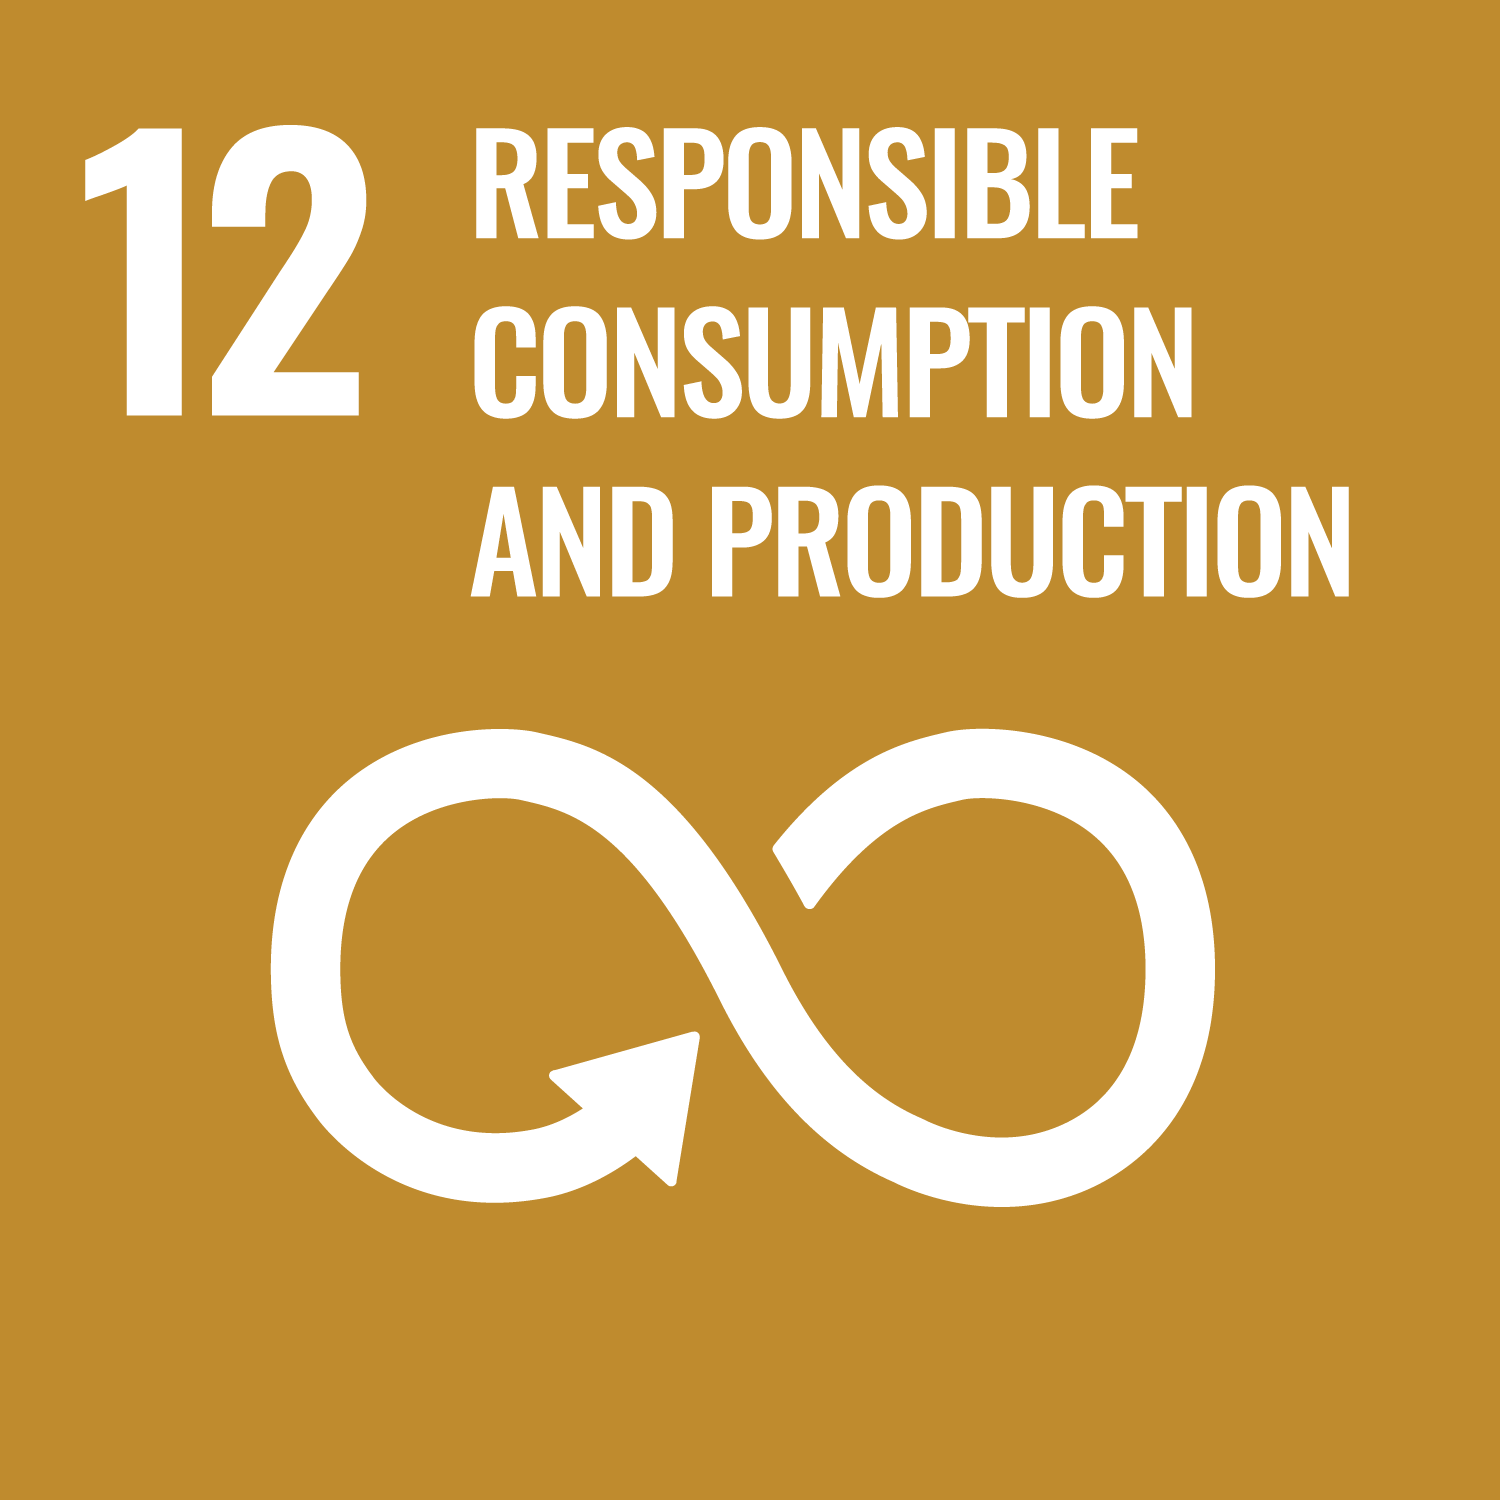 Responsible consumption and production graphic.